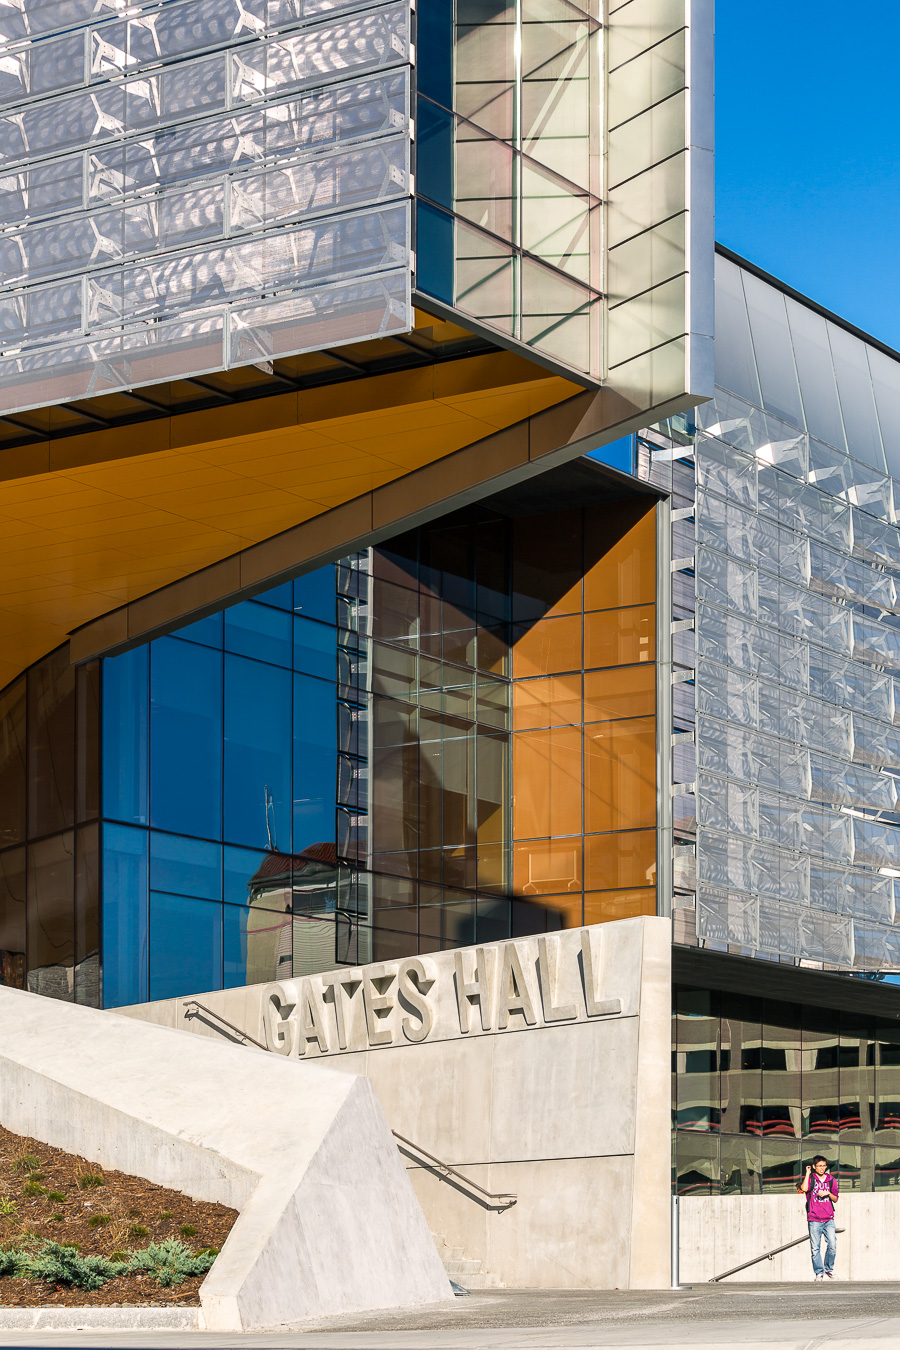 doublespace_photo_morphosis_bill_melind_gates_hall_cornell_academic-22